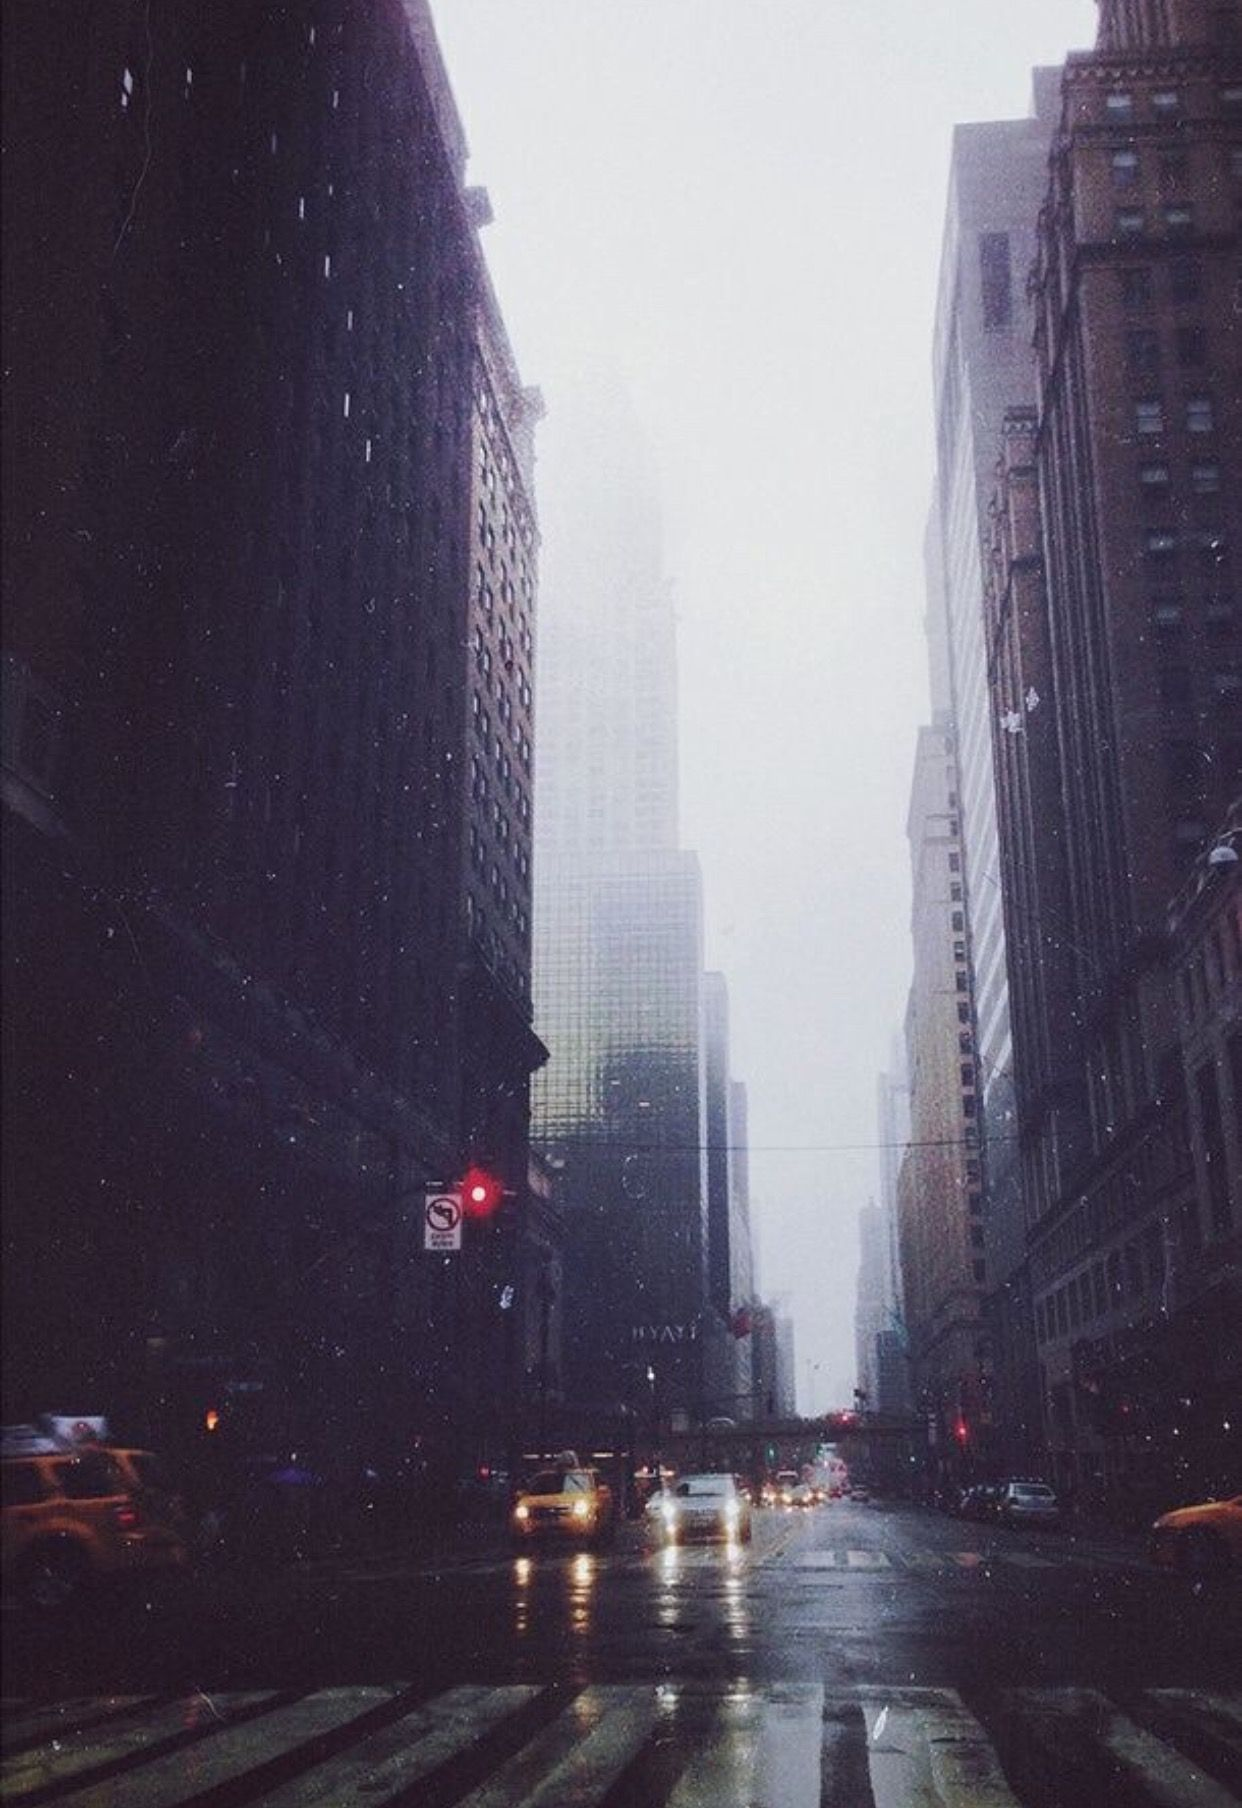 Foggy City Wallpaper Hipster Vintage Grunge